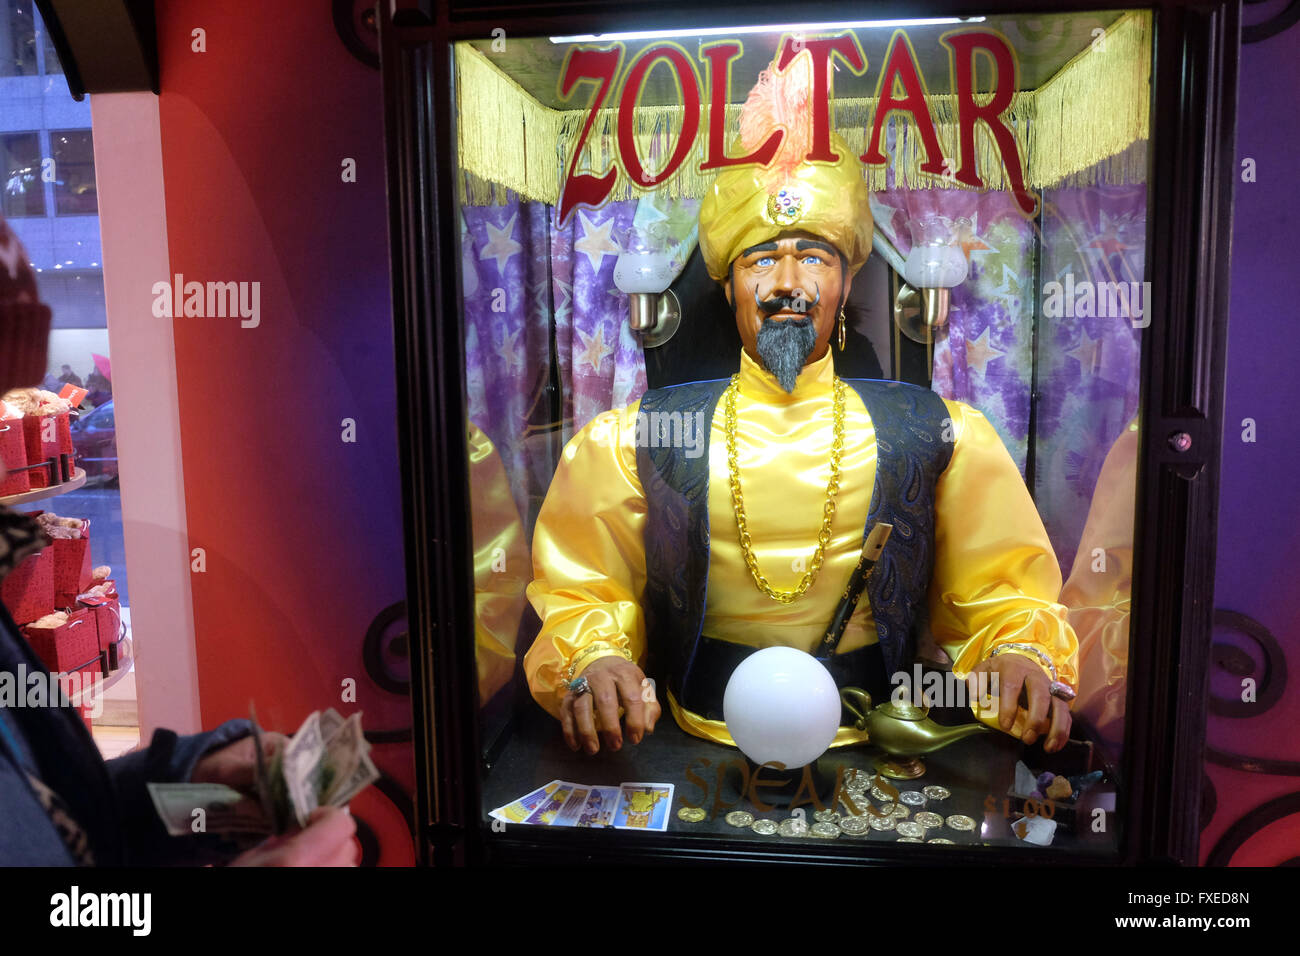 The Zoltar Fortune Telling machine, made famous in the Big movie located in F.A.O. Schwarz toy store New York City, - Stock Image